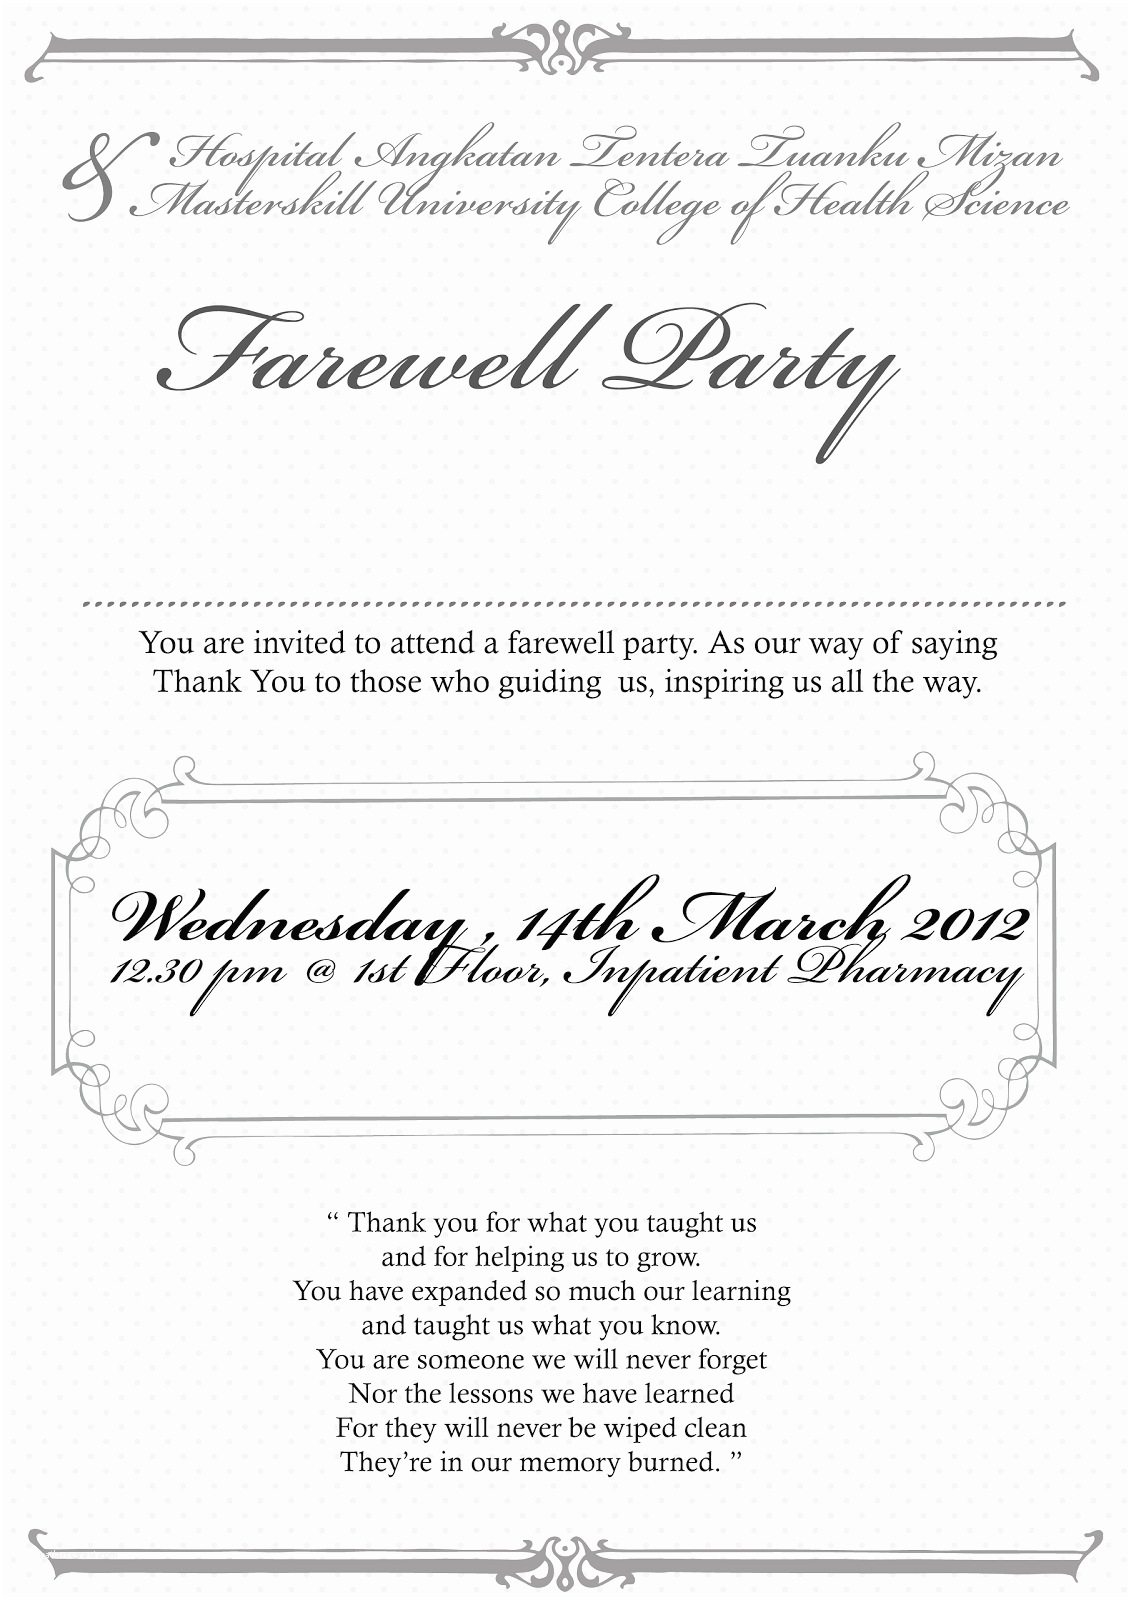 Farewell Party Invitation Wording thebigtree Invitation Card Farewell Party